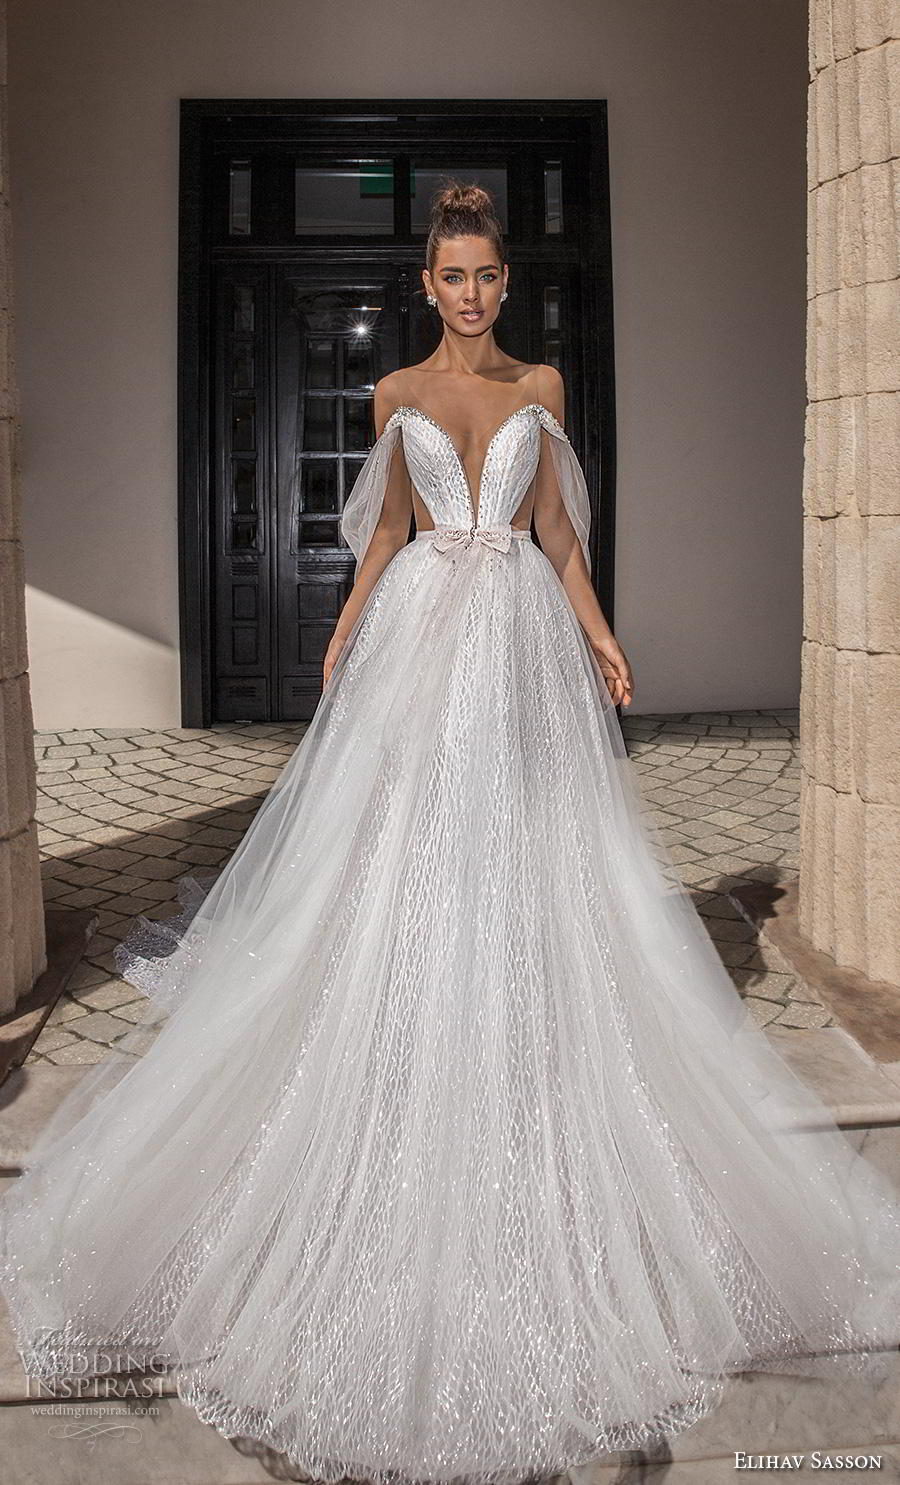 elihav sasson 2019 bridal off the shoulder deep plunging v neck full embellishment romantic a line wedding dress backless scoop back chapel train (16) mv